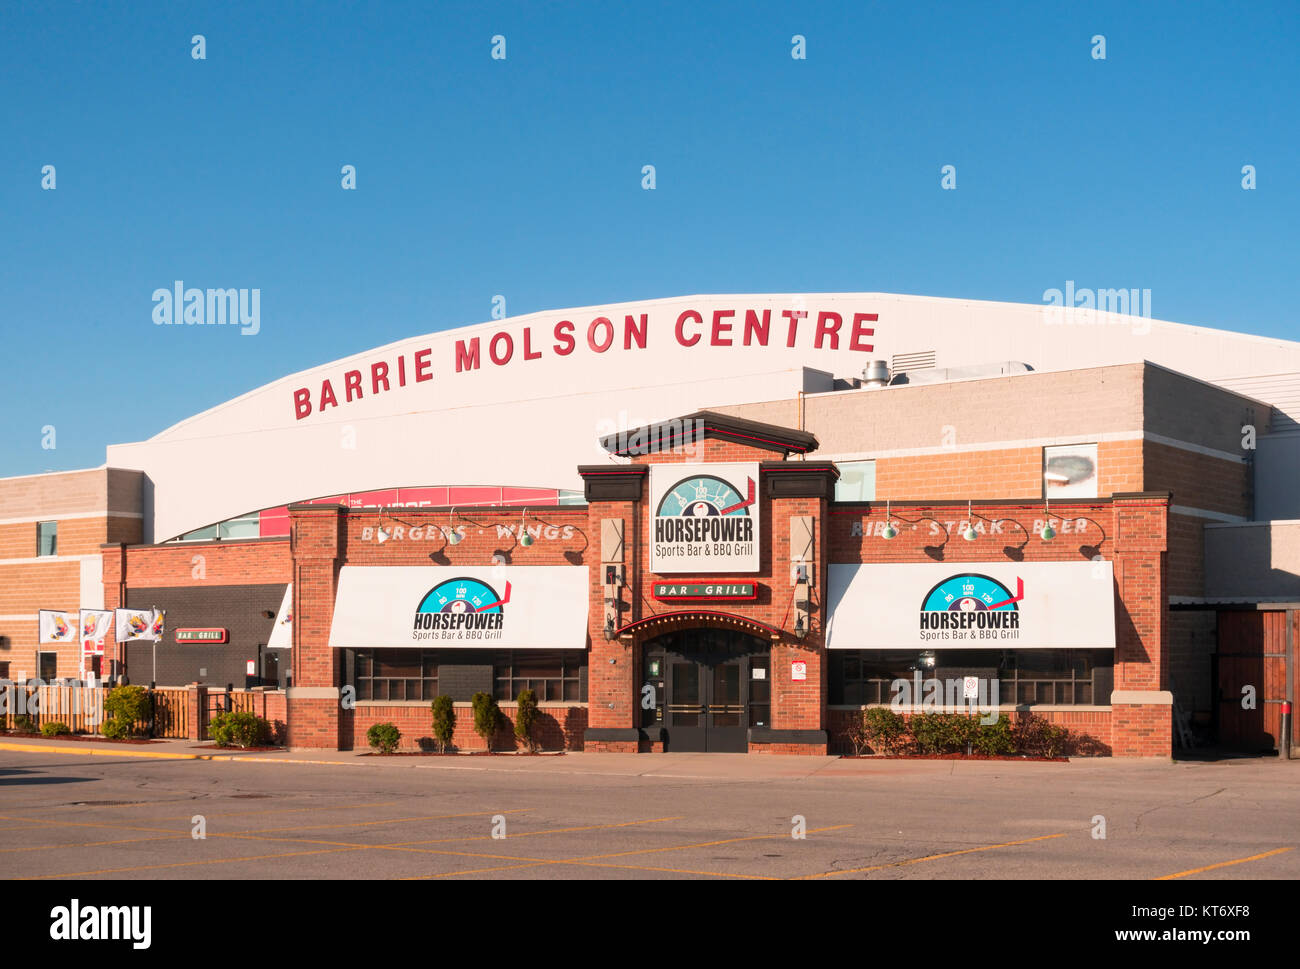 The Barrie Molson Centre in Barrie, Ontario, Canada. - Stock Image